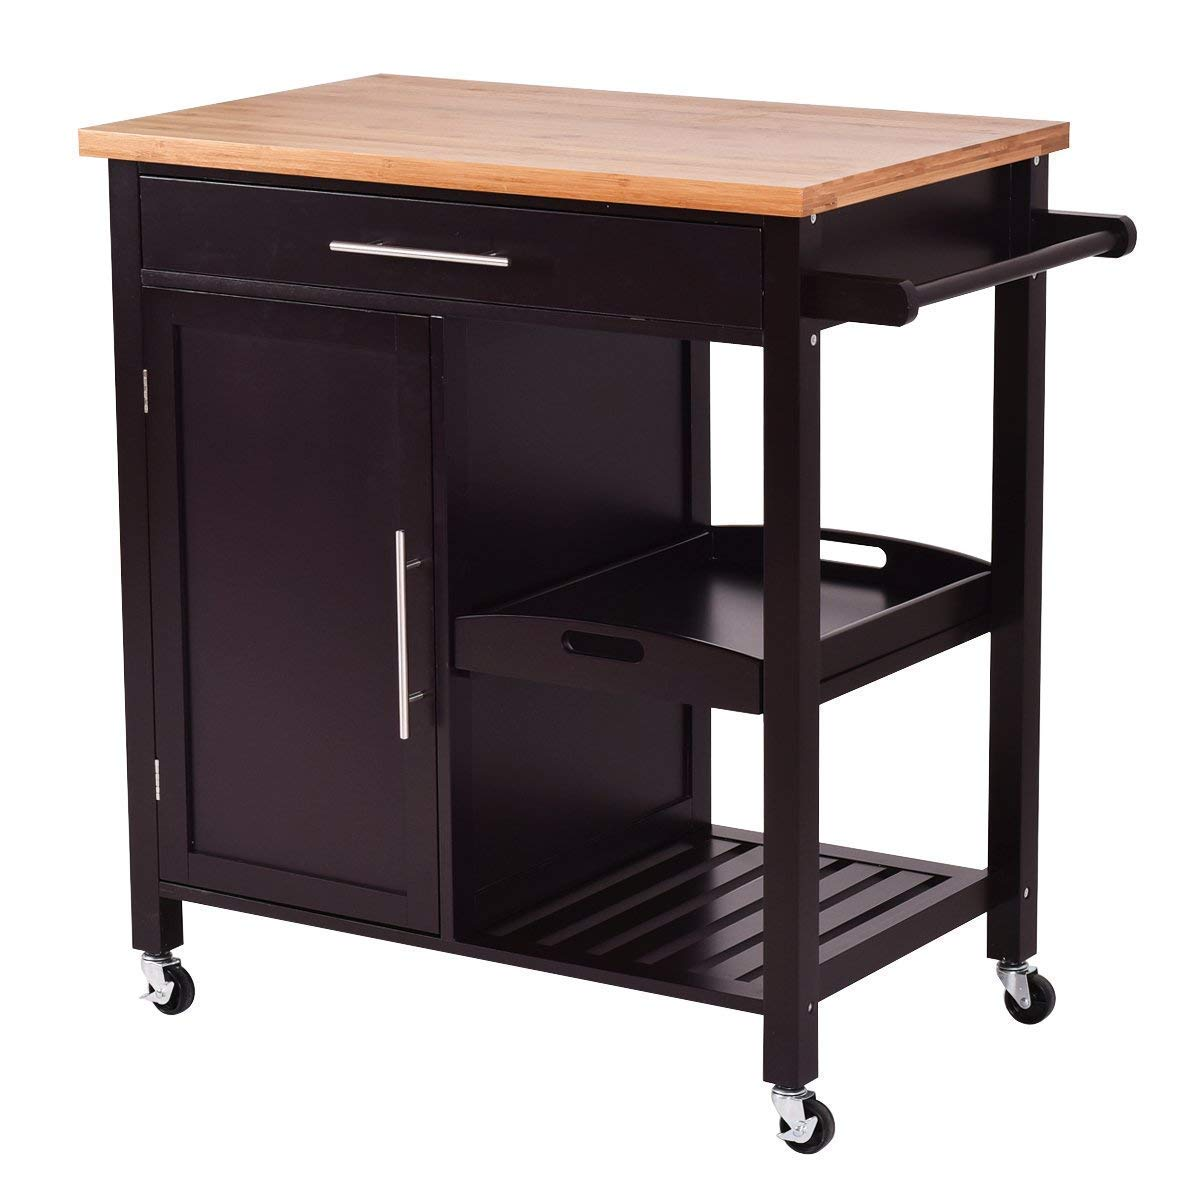 Get Quotations Giantex Kitchen Trolley Cart Wood Rolling Island Home Restaurant Dining Room Serving Utility